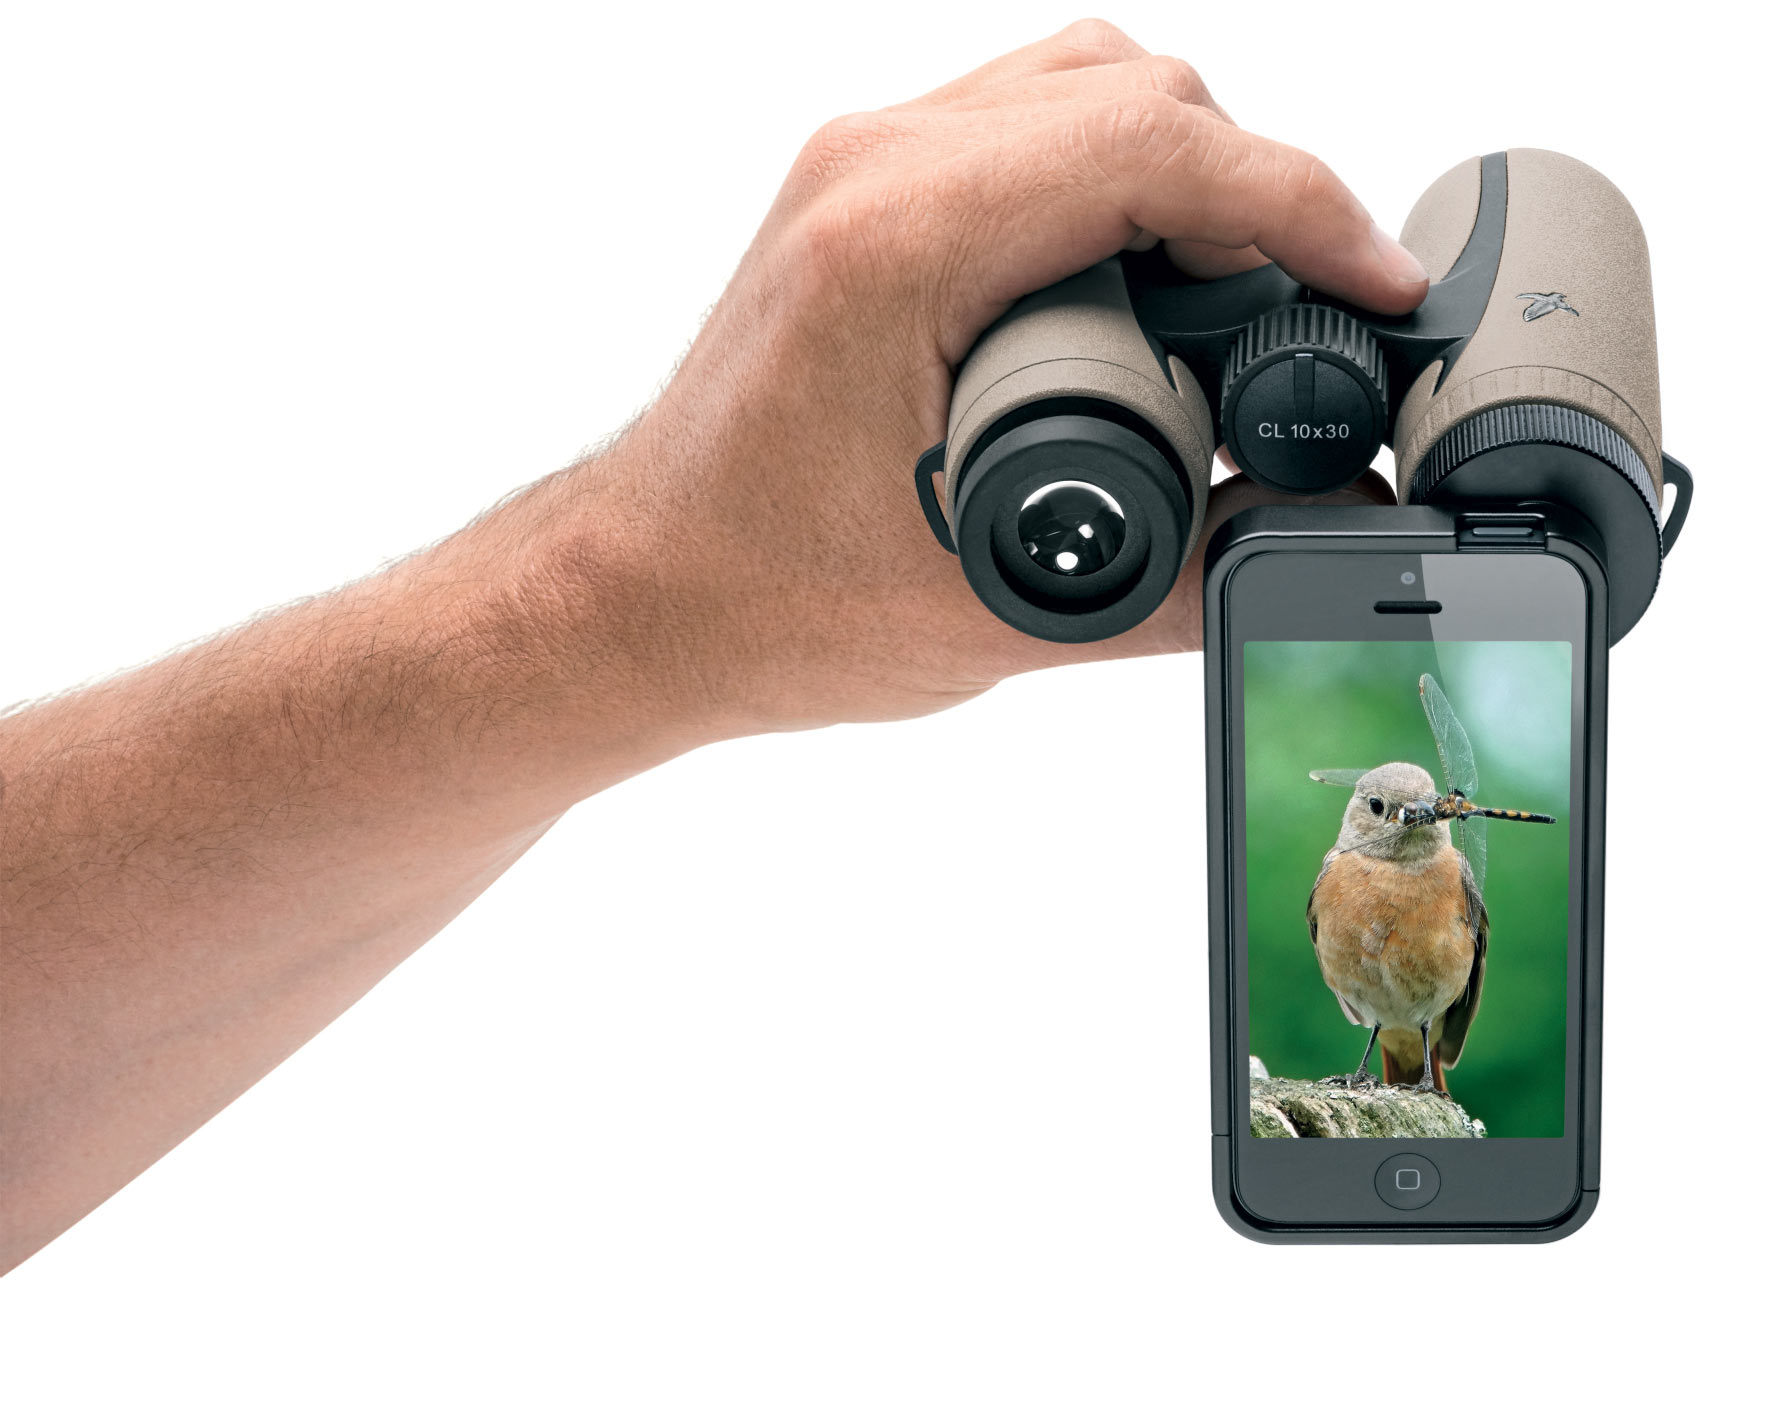 The Swarovski PA-i5 adapter lets you use your iPhone to take photos through your binoculars.